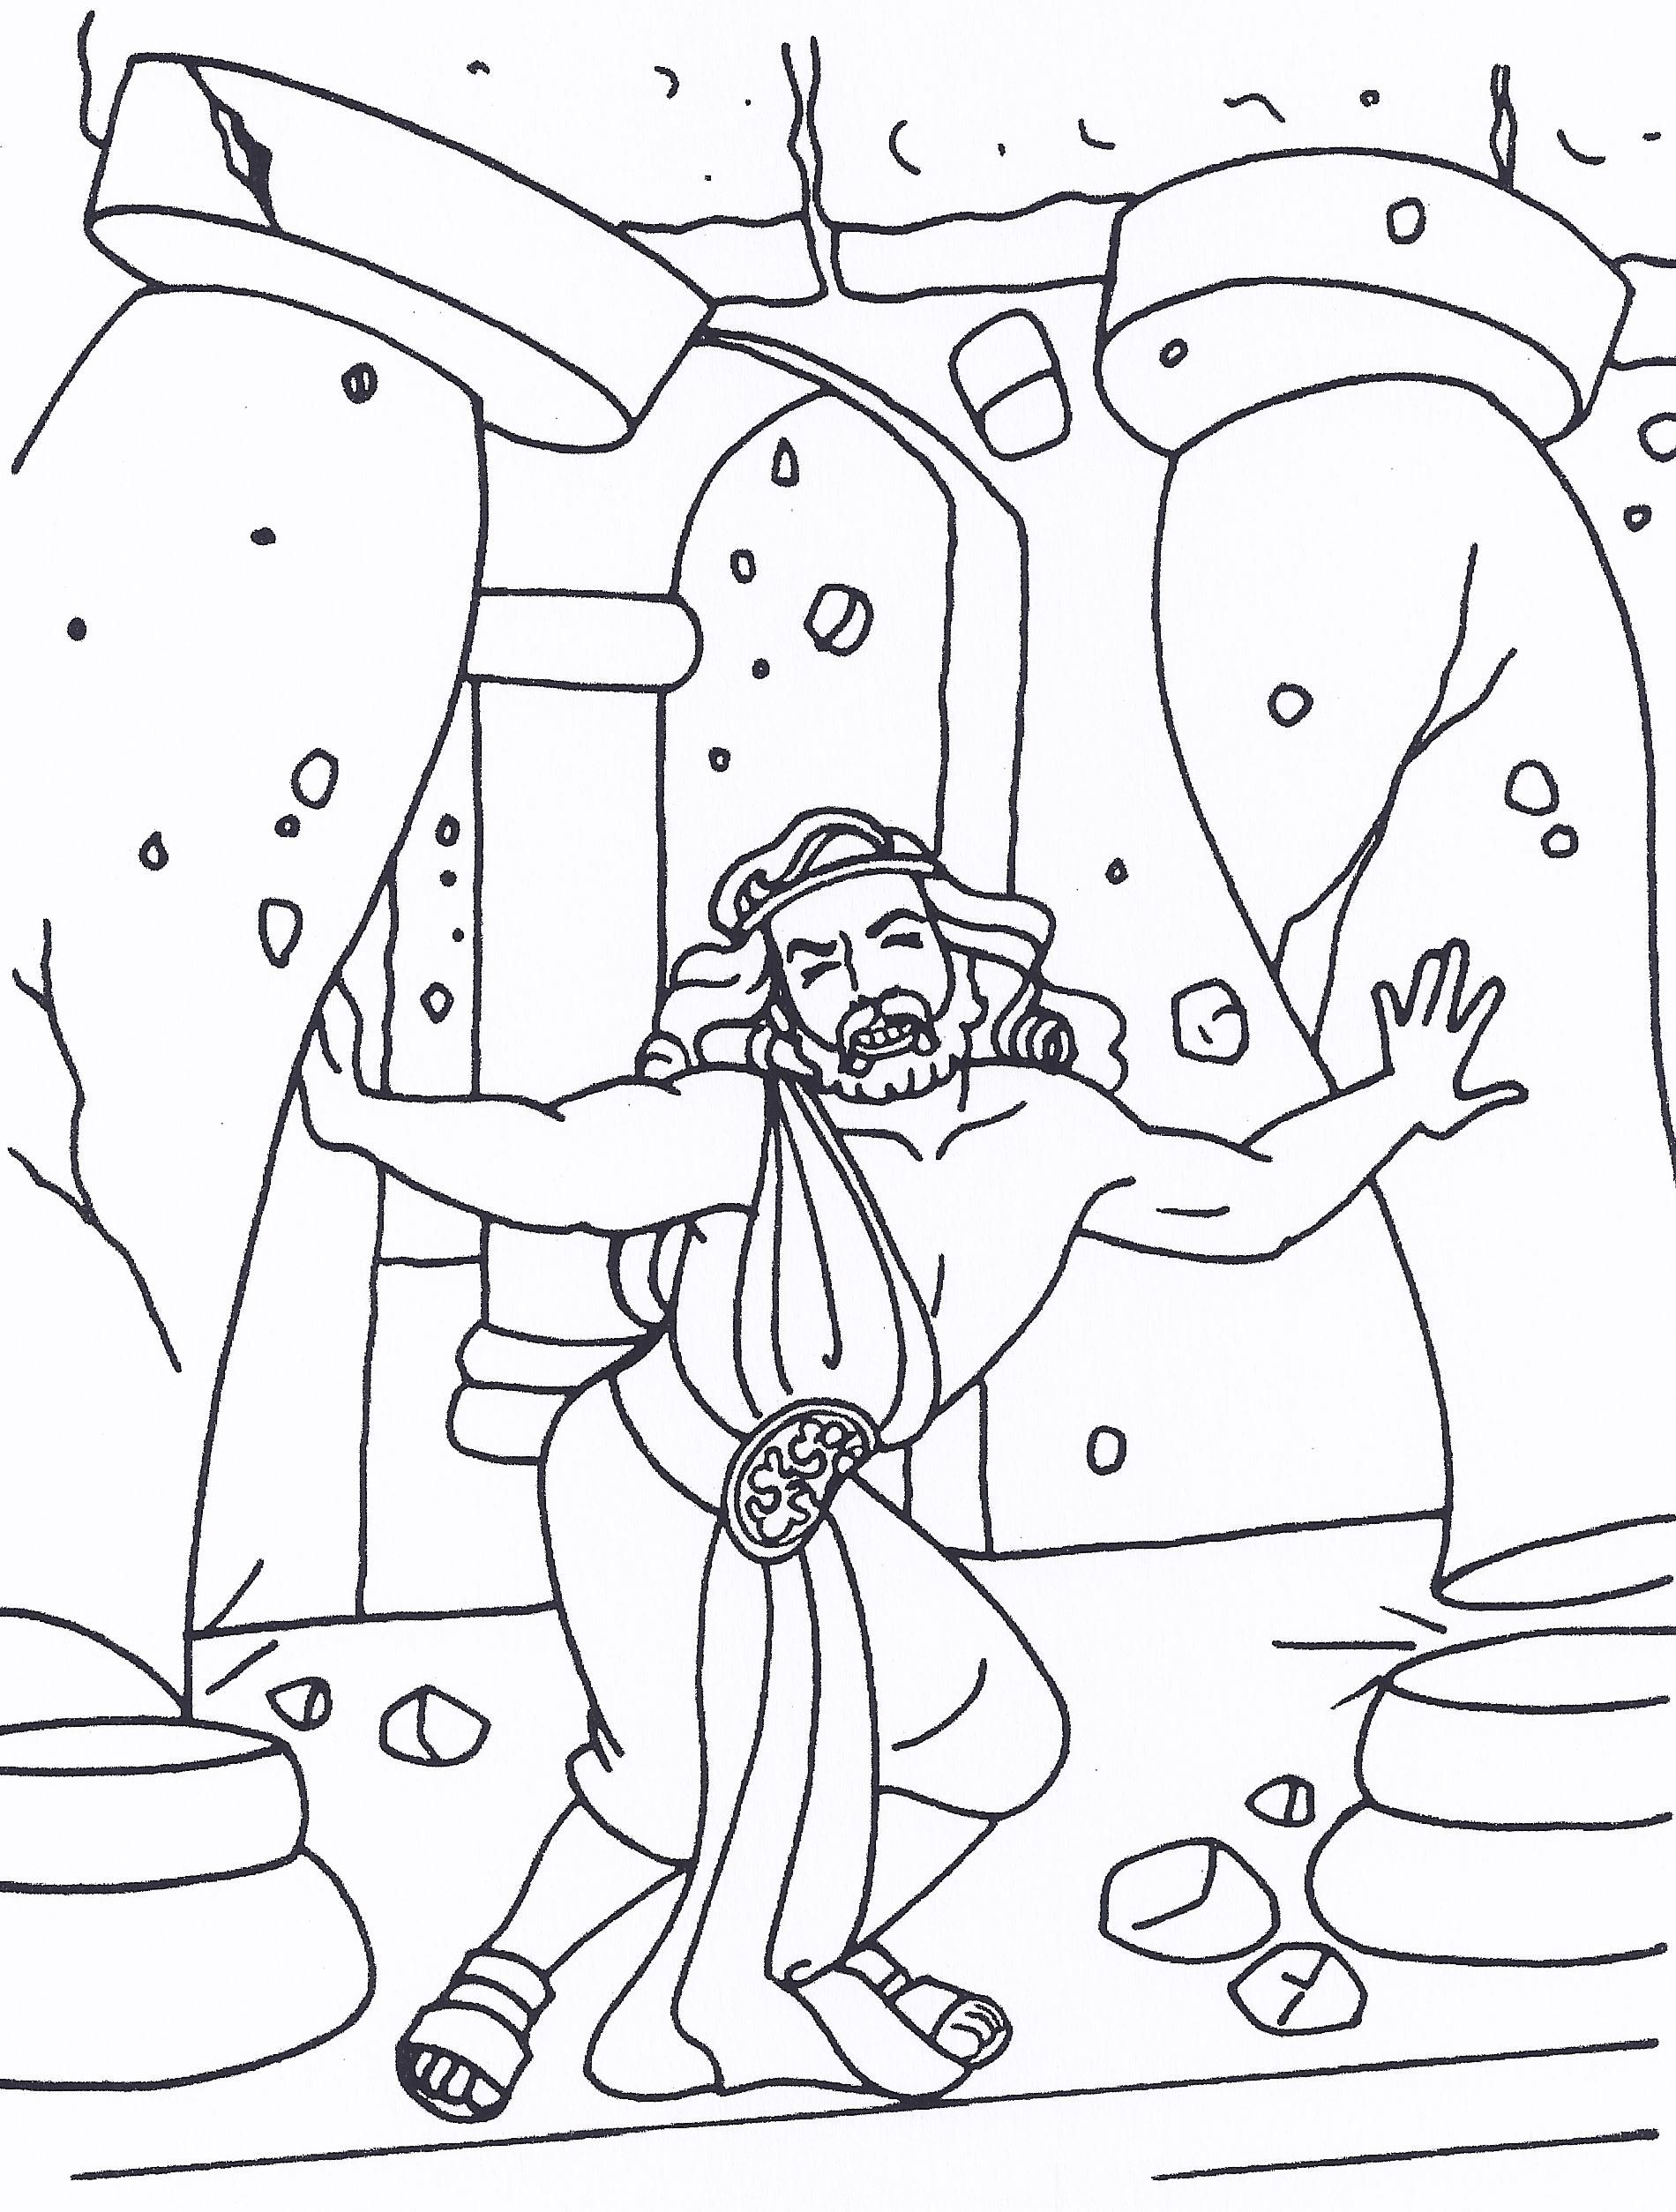 99 Top Coloring Pages Bible Characters Images & Pictures In HD